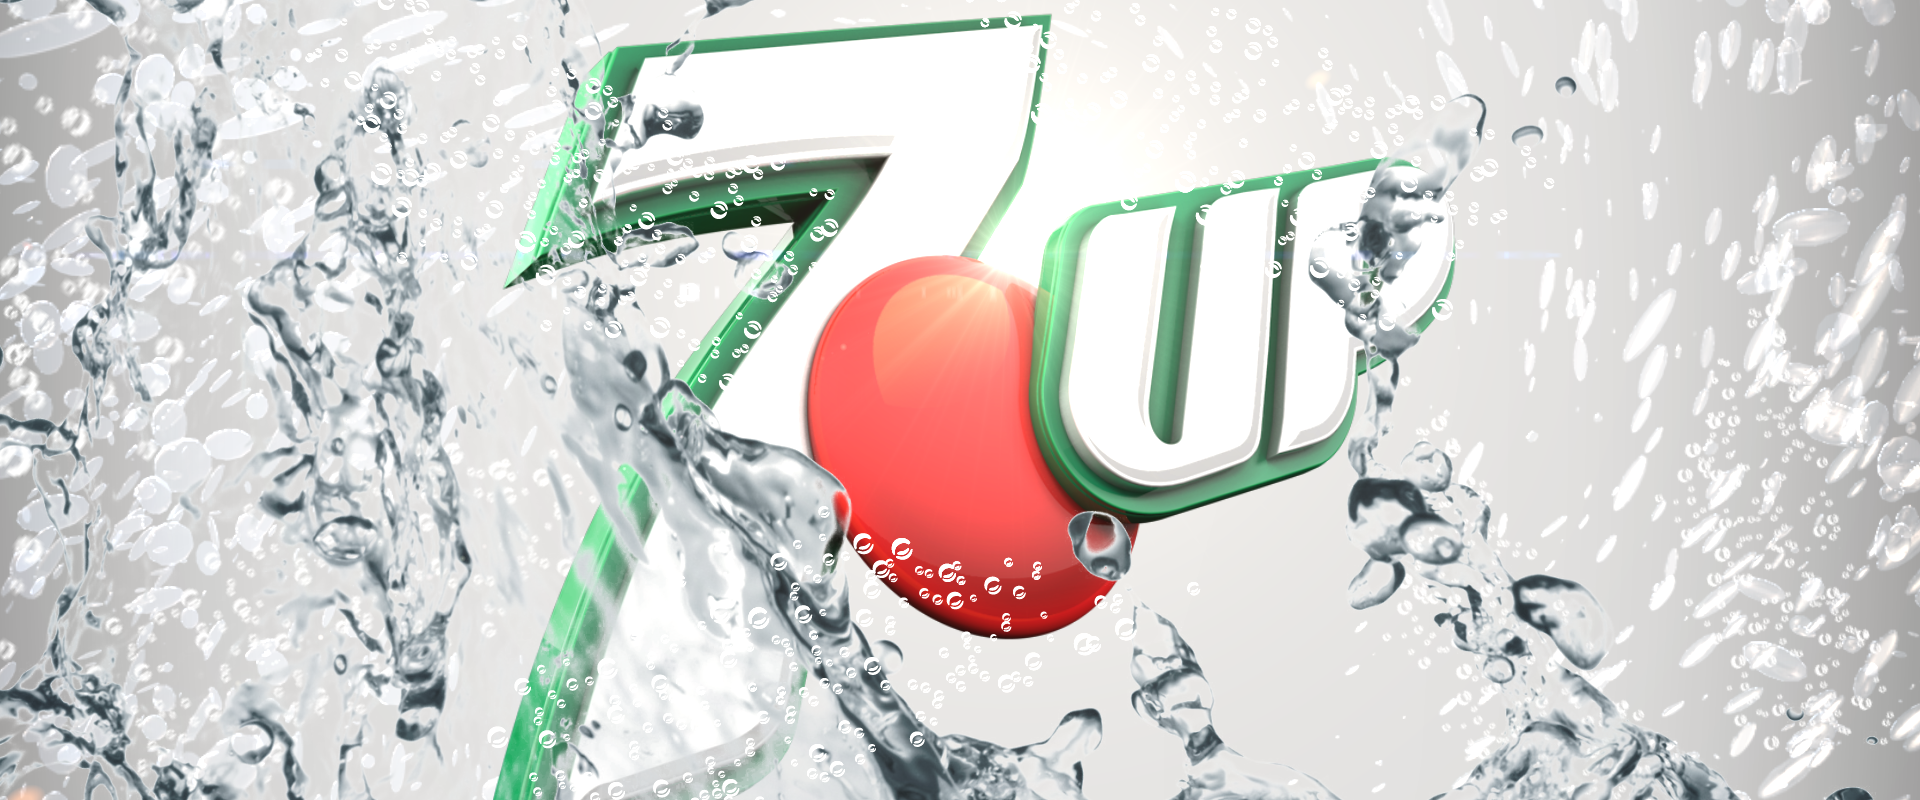 7up Our Work.png